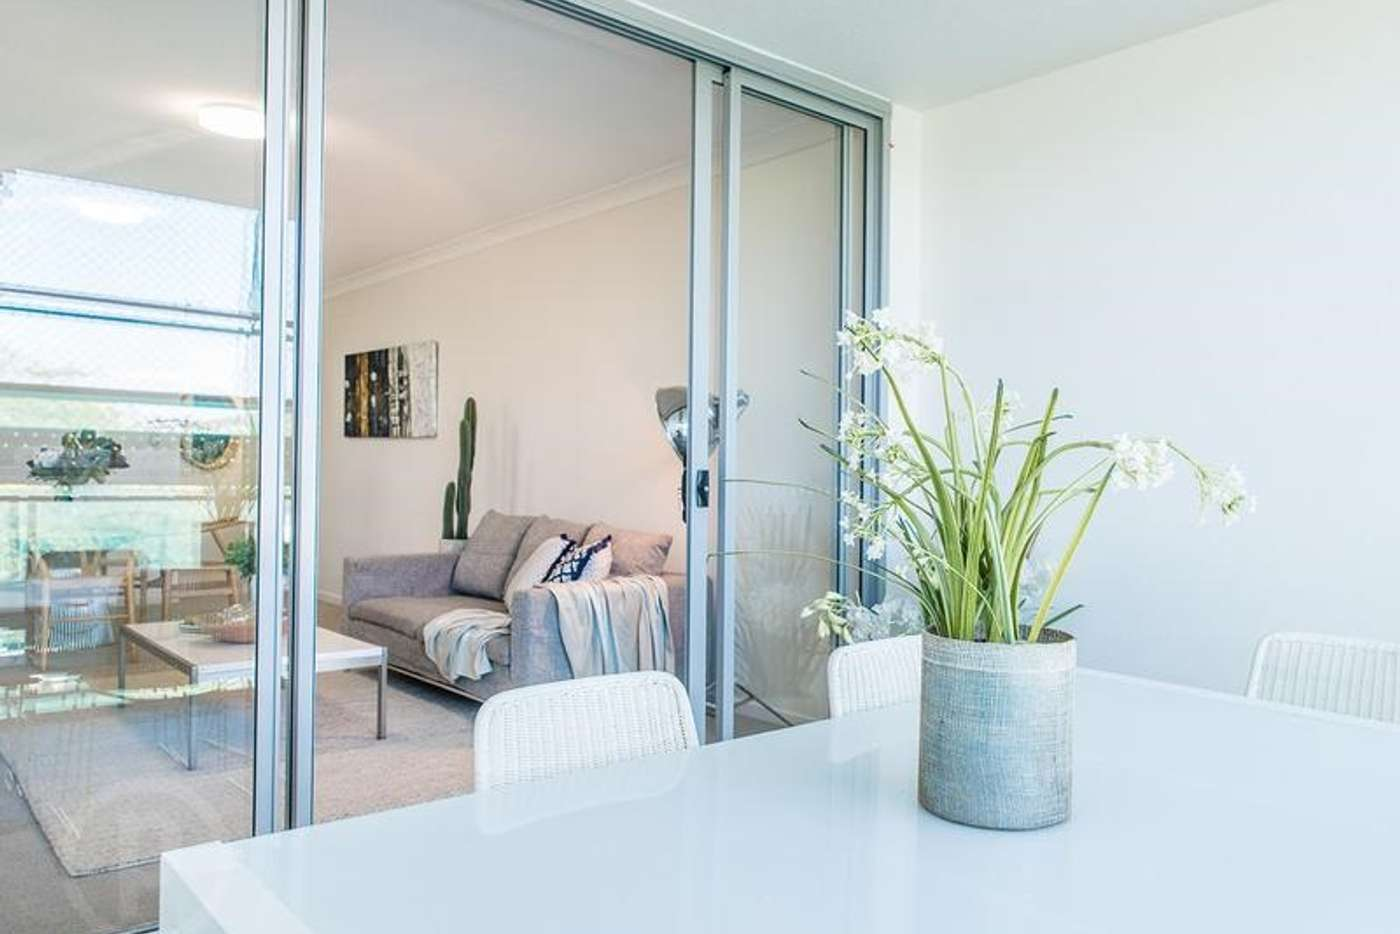 Fifth view of Homely apartment listing, 19 Talbot Street, Coorparoo QLD 4151